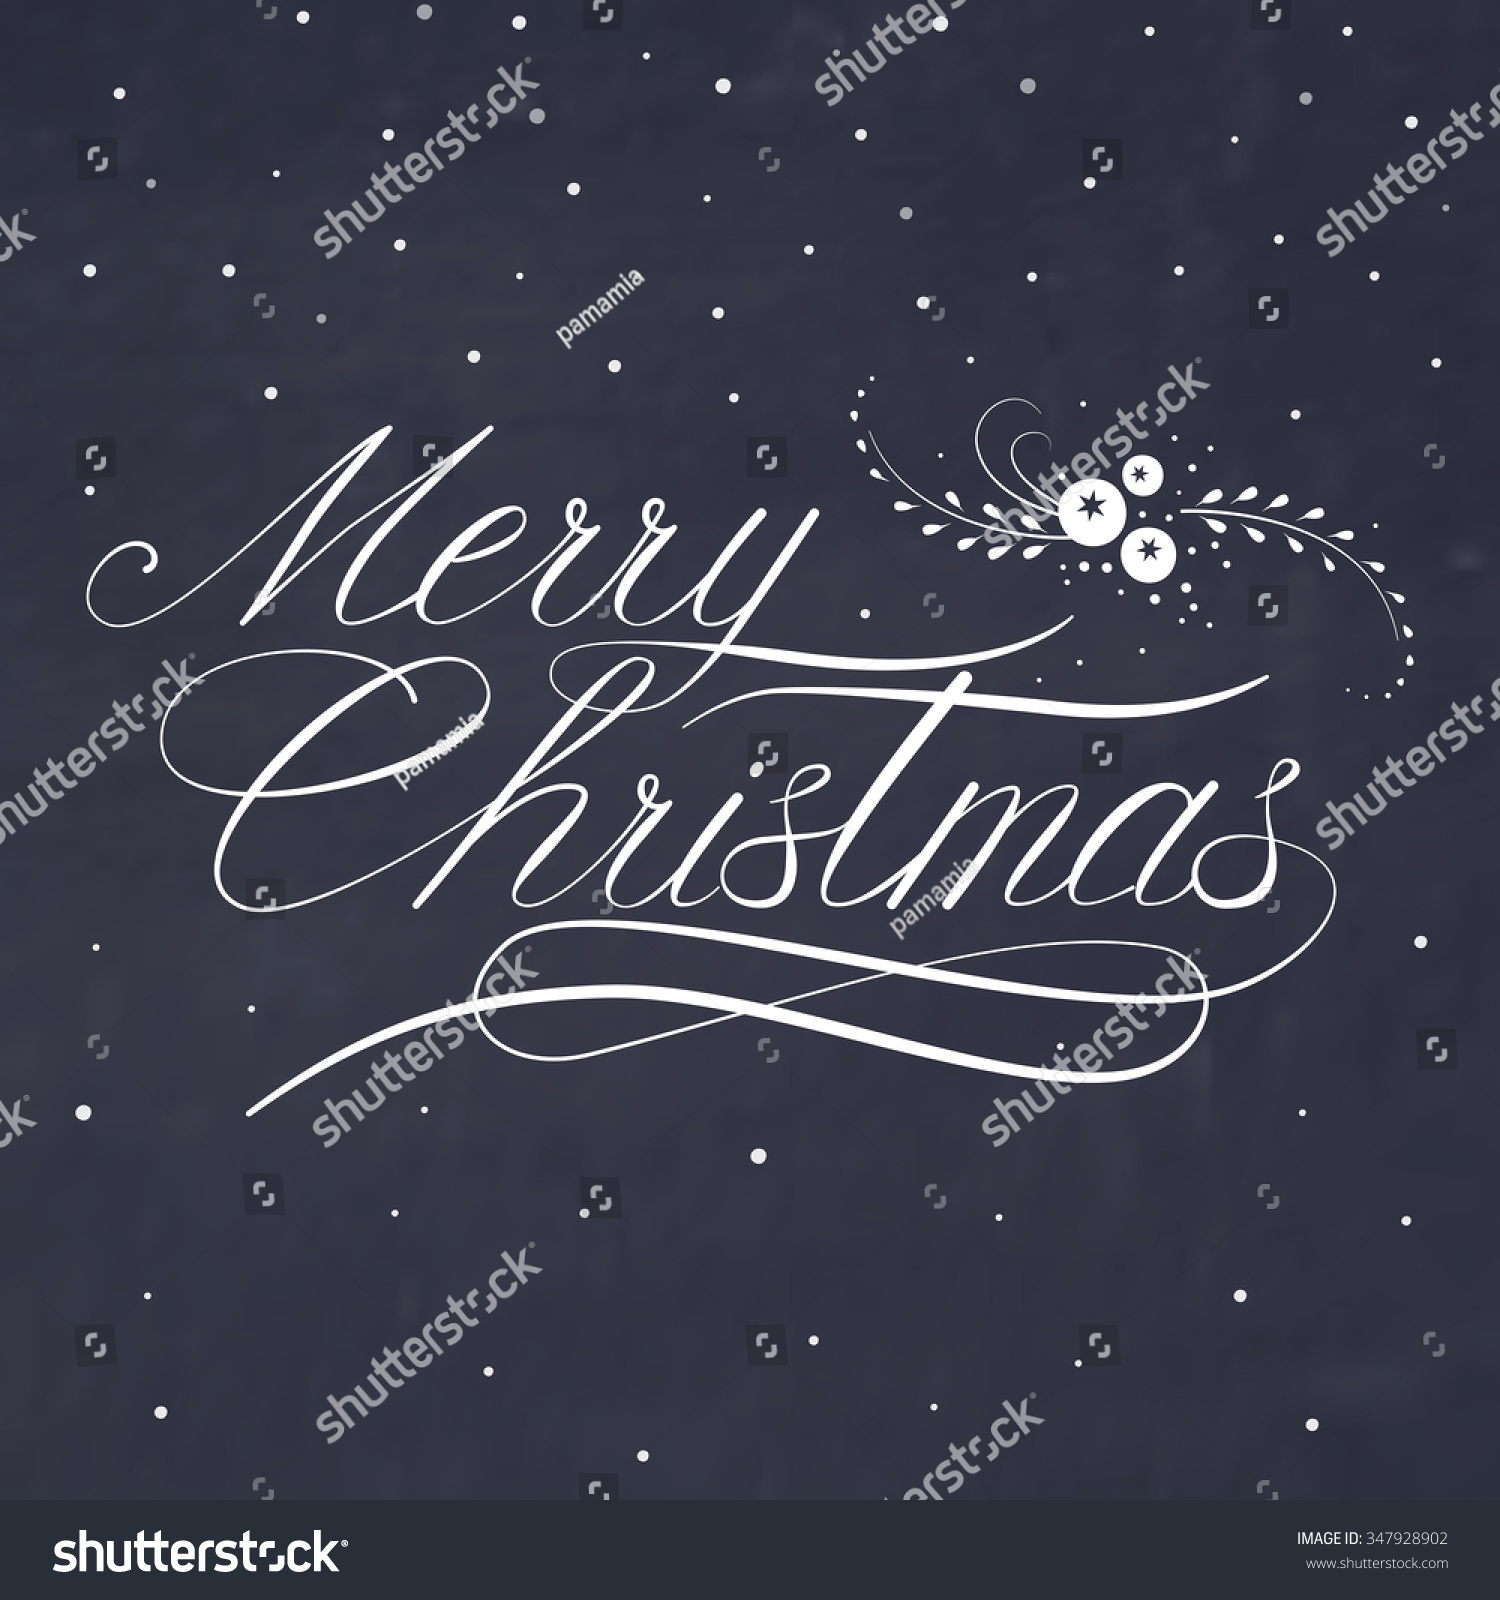 Merry Christmas Card Template Greetings Lettering Stock Vector ...